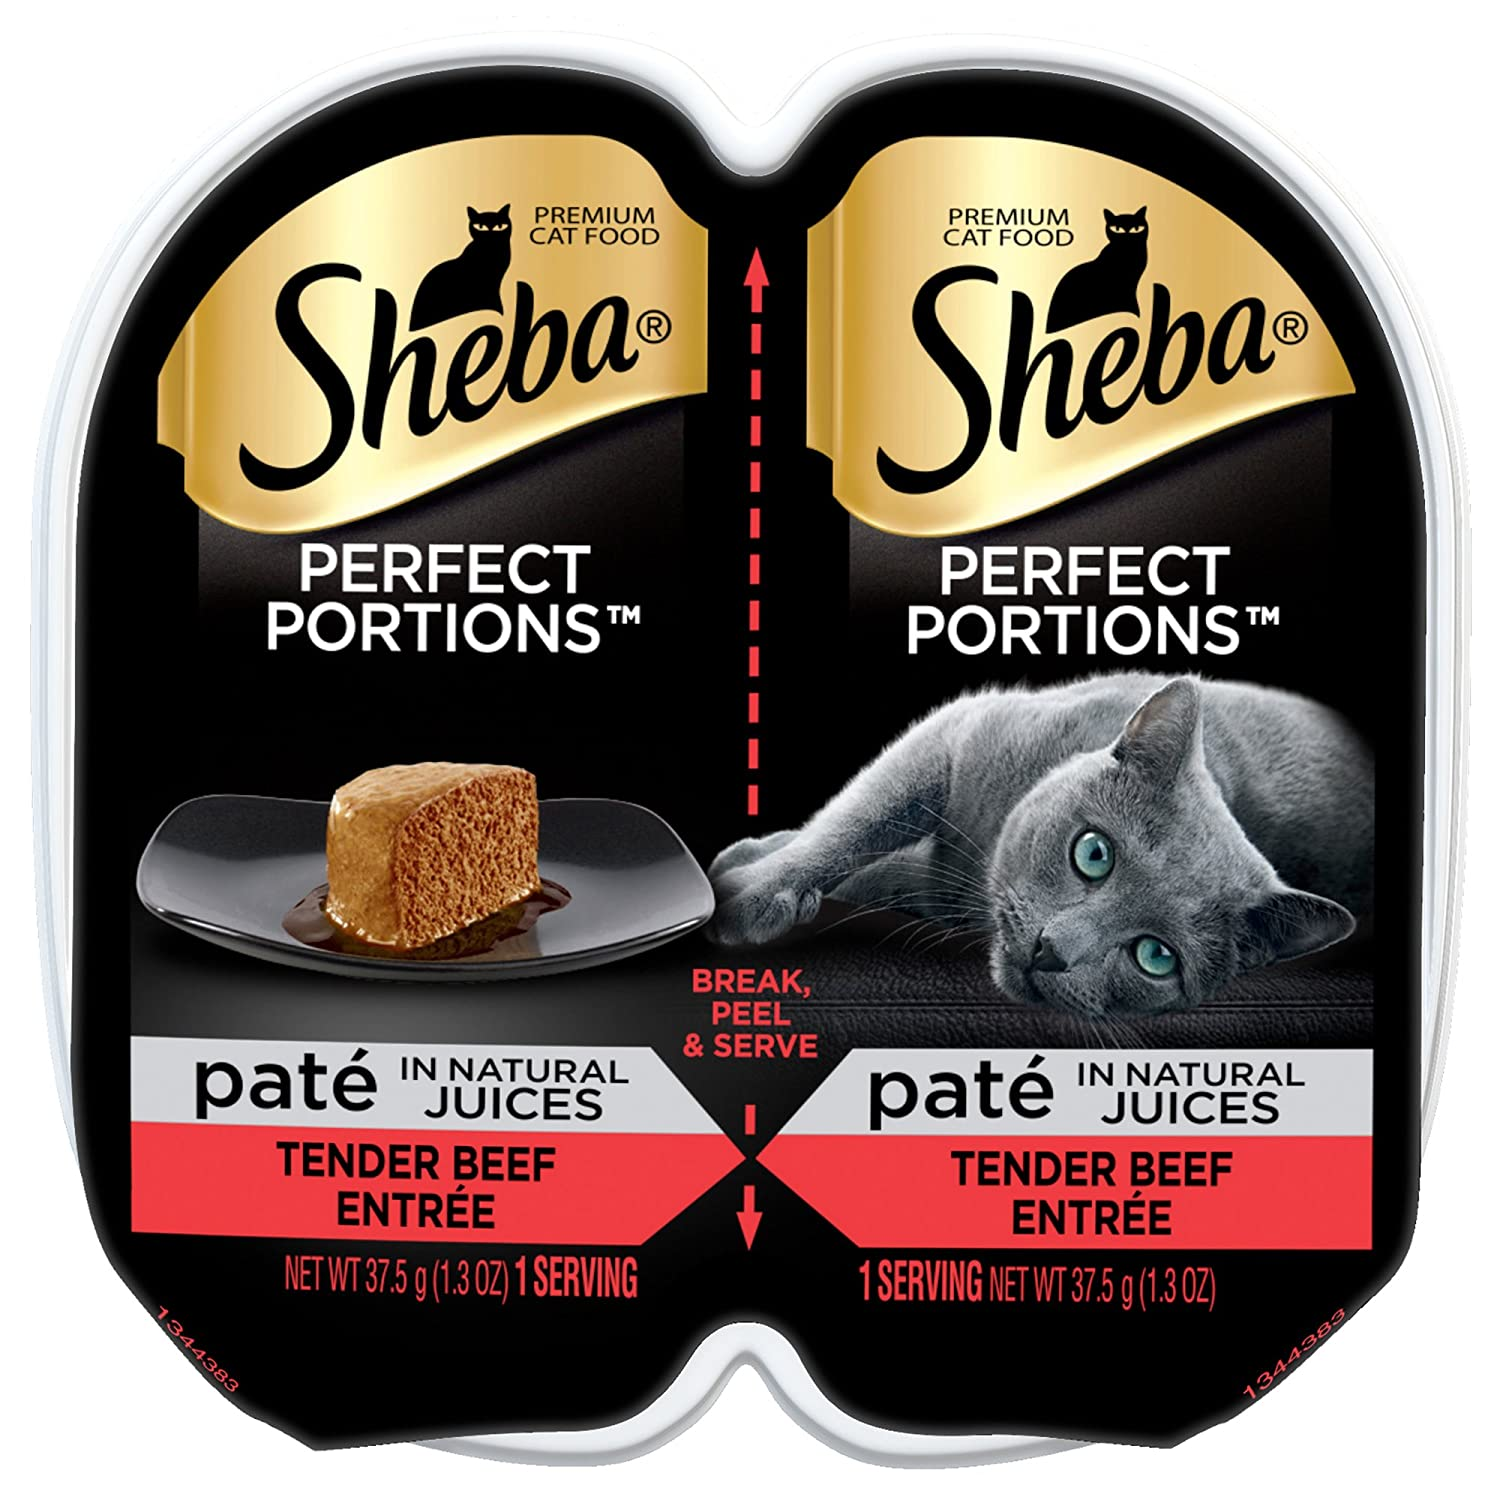 Sheba Premium Cat Food Perfect Portions Pate Tender Beef Entree - 2 Ct